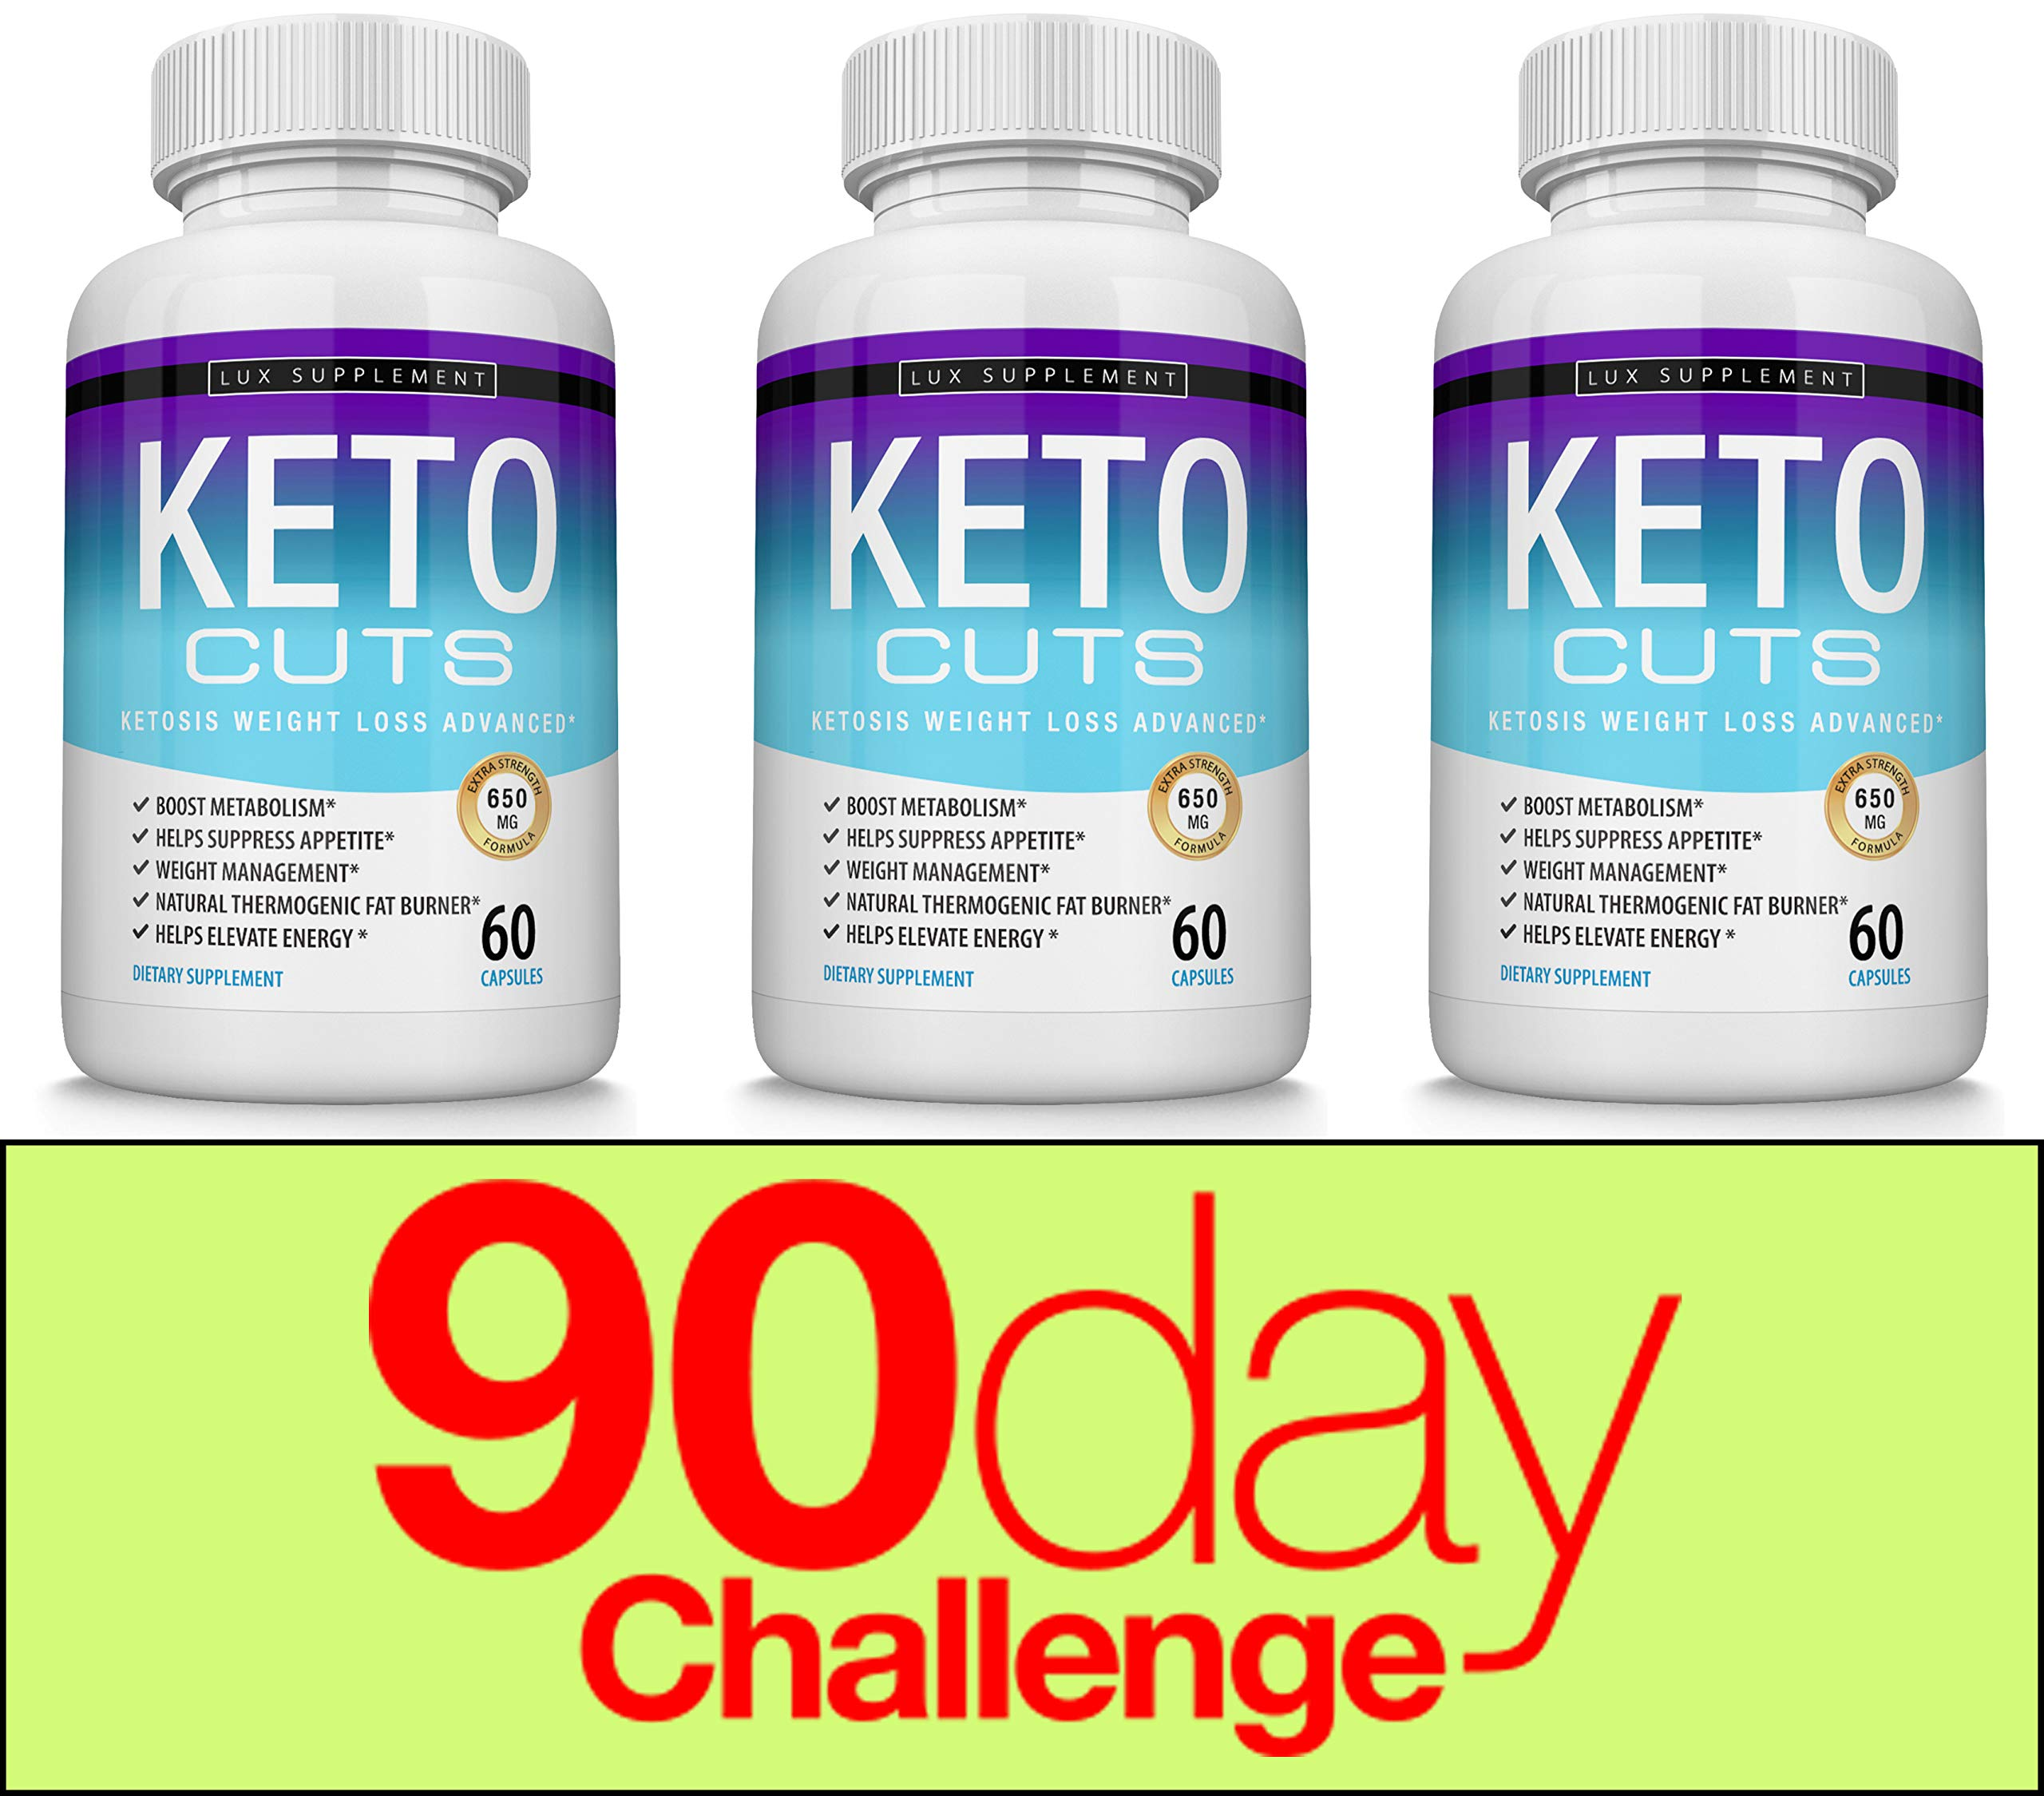 Keto Cuts Pills Ketosis Weight Loss Advanced - Best Ultra Fat Burner Using Ketone and ketogenic Diet, Boost Metabolism and Energy While Burning Fat, Men Women, 60 Capsules Lux Supplement by Lux Supplement